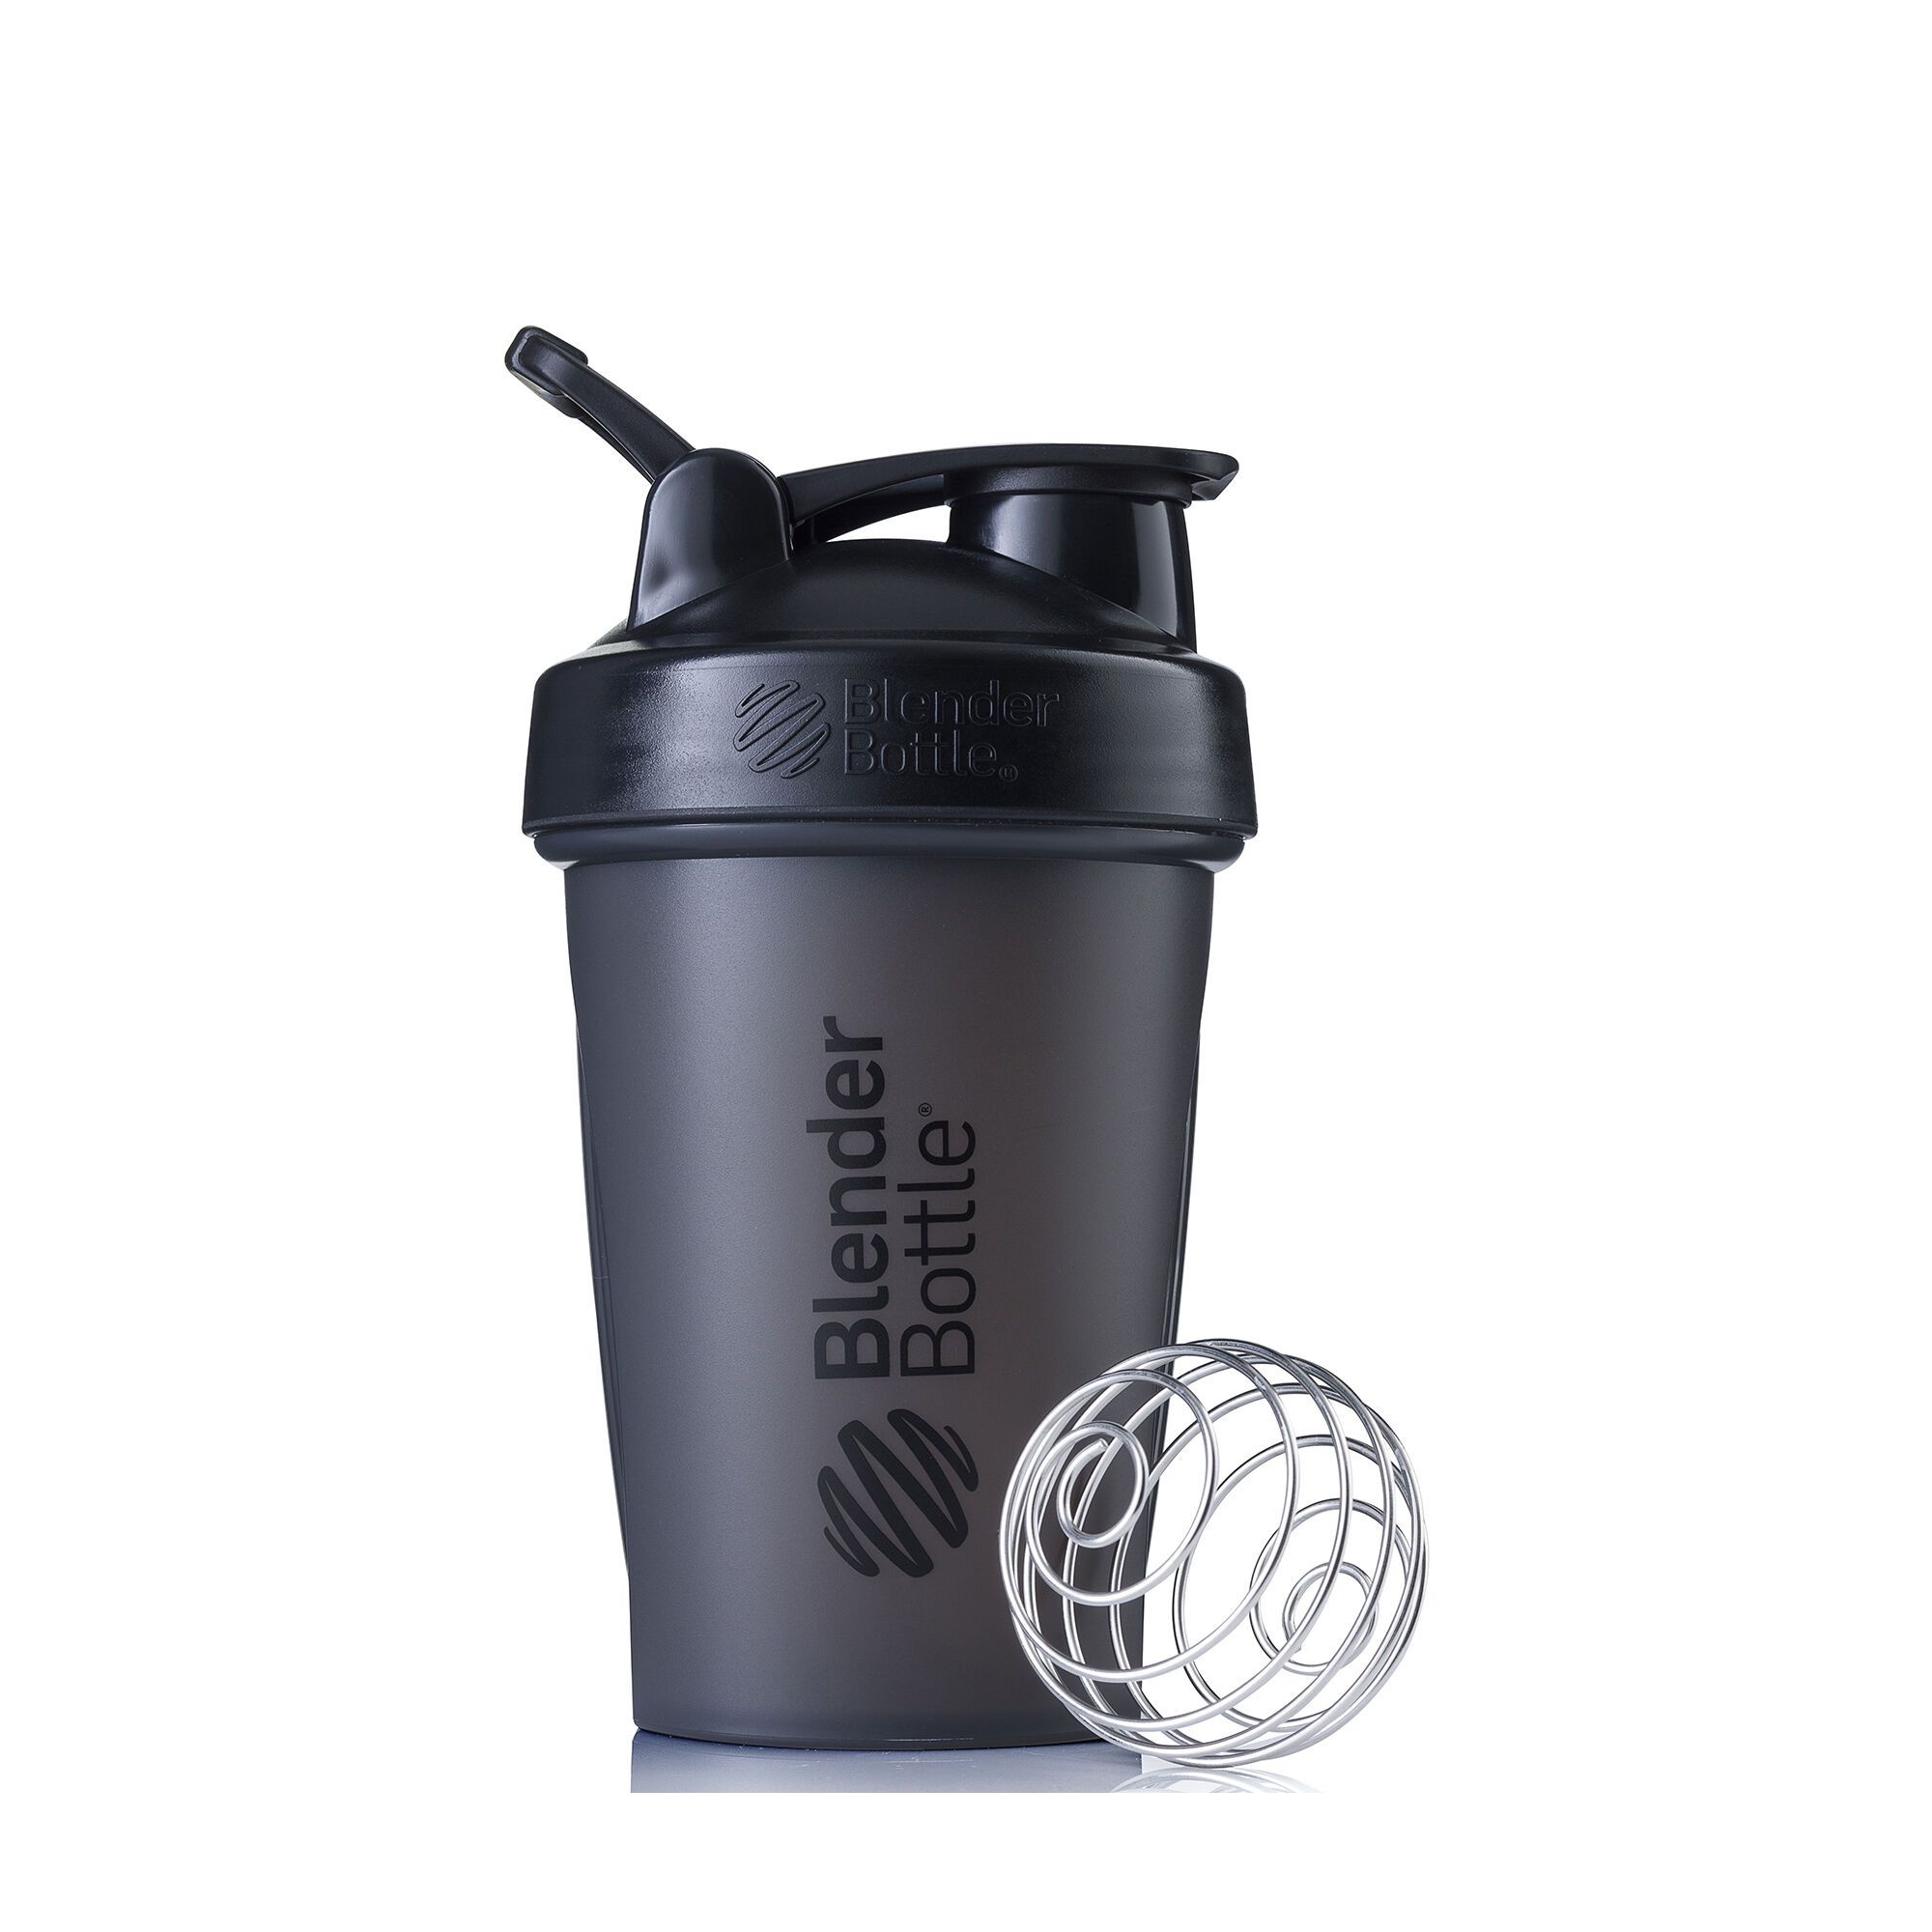 Blenderbottle20oz Classicg (w/ Loop) Black Mixers Shakers And Bottles